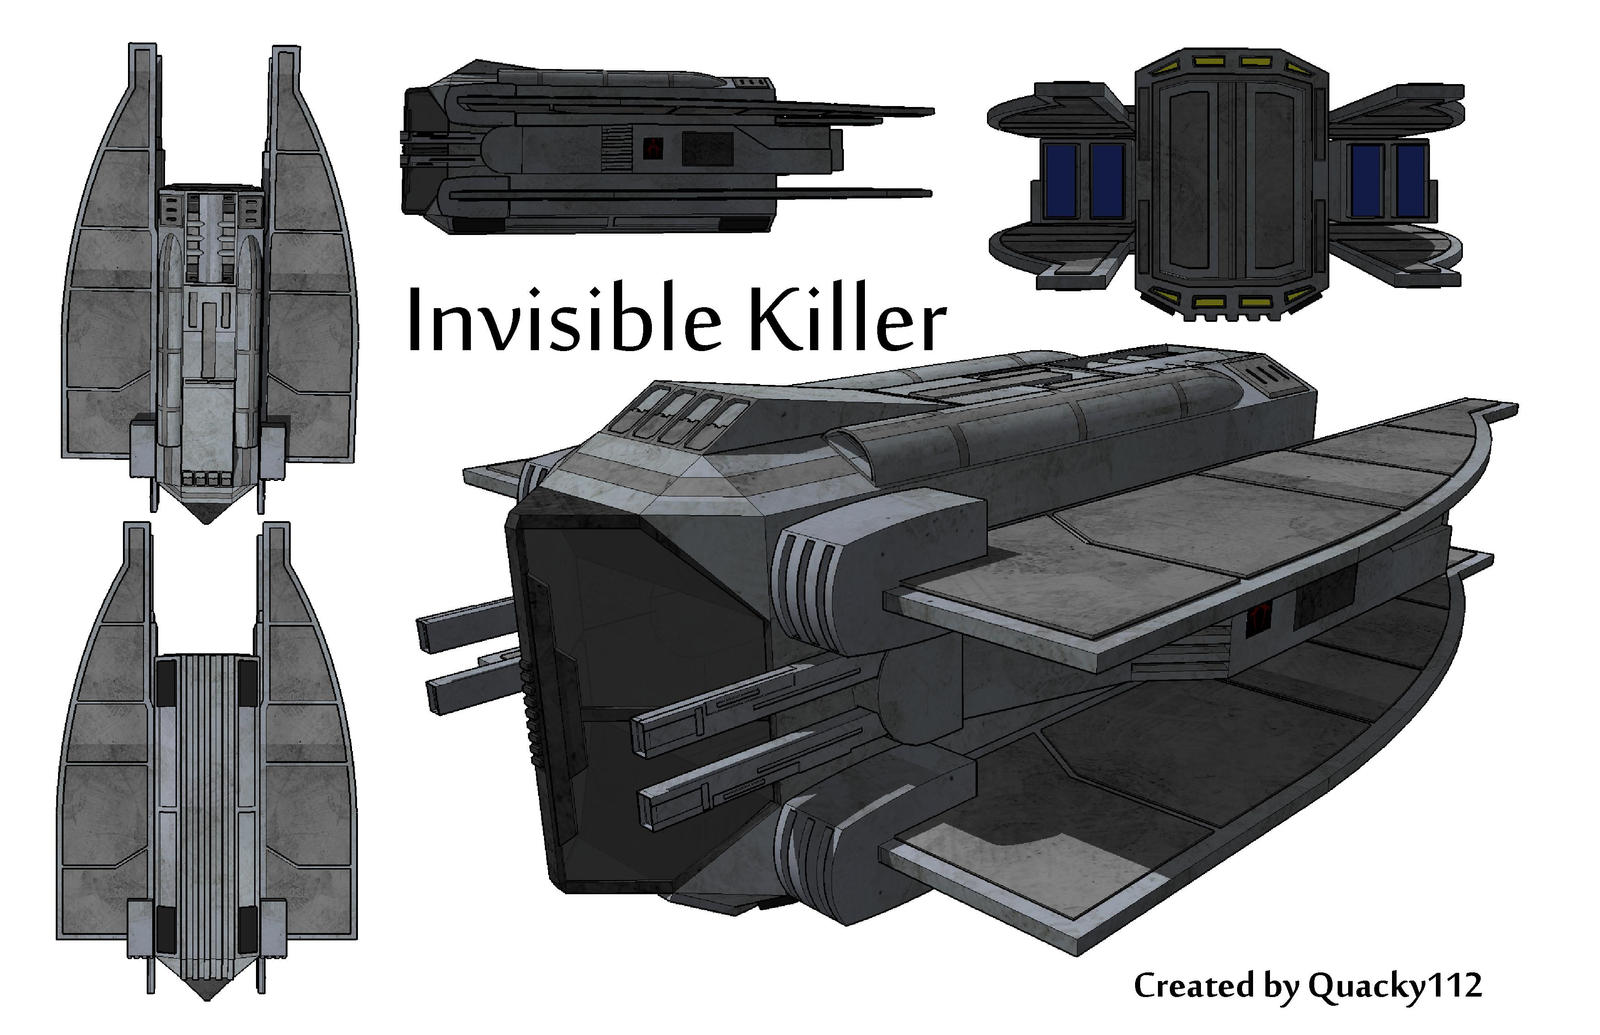 The Invisible Killer by quacky112